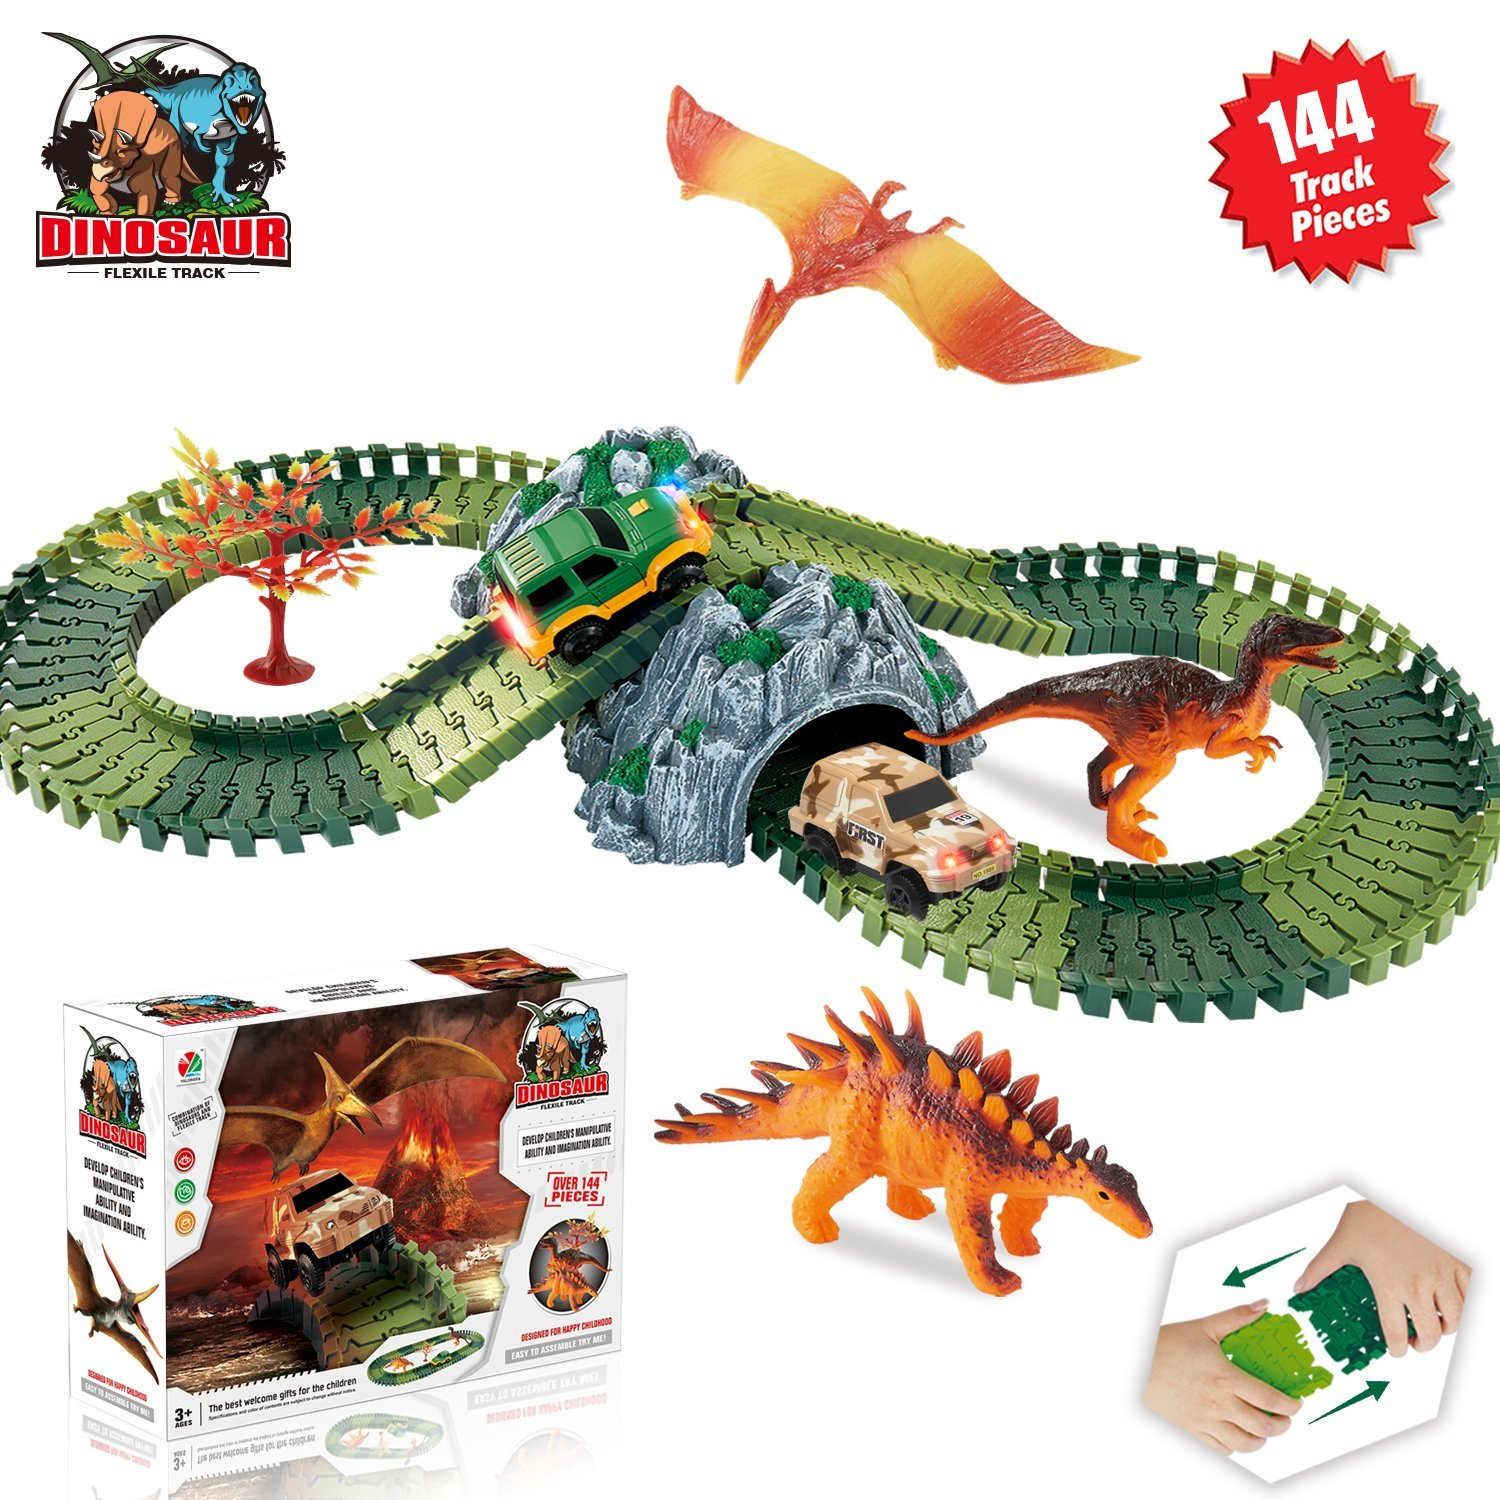 HOMOFY Dinosaur Toys Race Car Track Sets Jurassic World with 144 Pcs Flexible Tracks, 3 Dinosaurs,2 Led Cars,1 Tree and 2 In 1 Tunnel for 2 3 4 Year Old Girls and Boys-Super Fun Dinosaur Toys